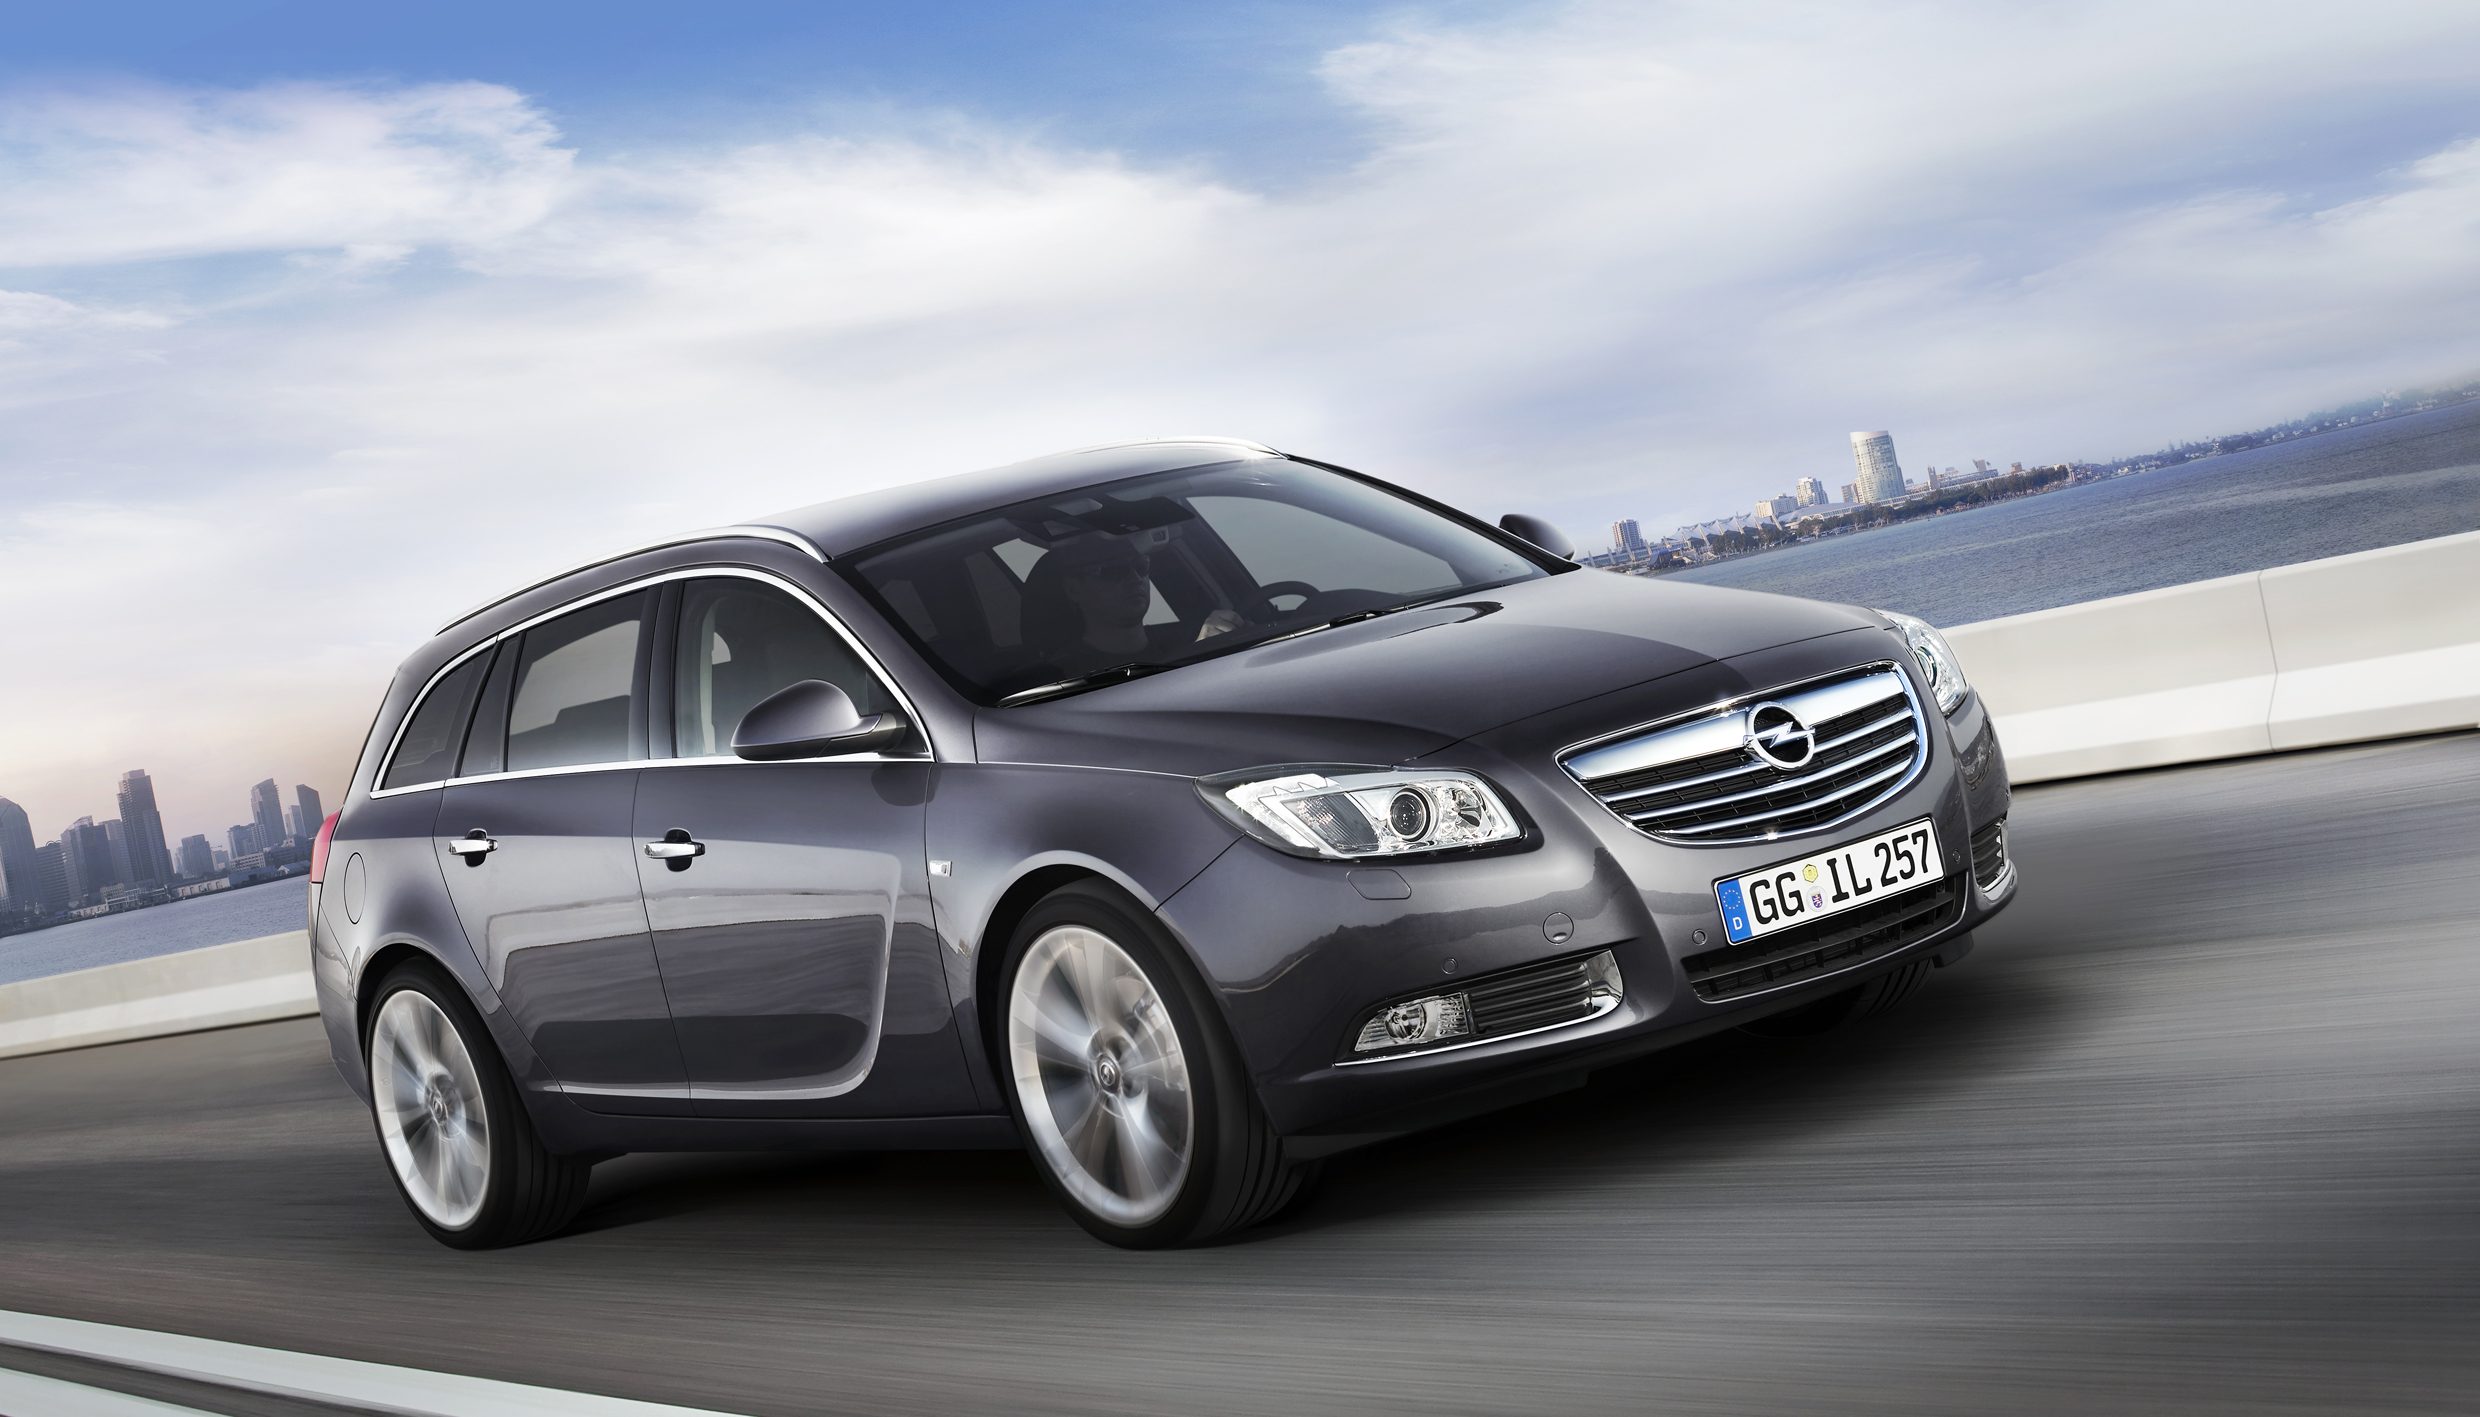 opel insignia sports tourer 1 6 turbo photos and comments. Black Bedroom Furniture Sets. Home Design Ideas